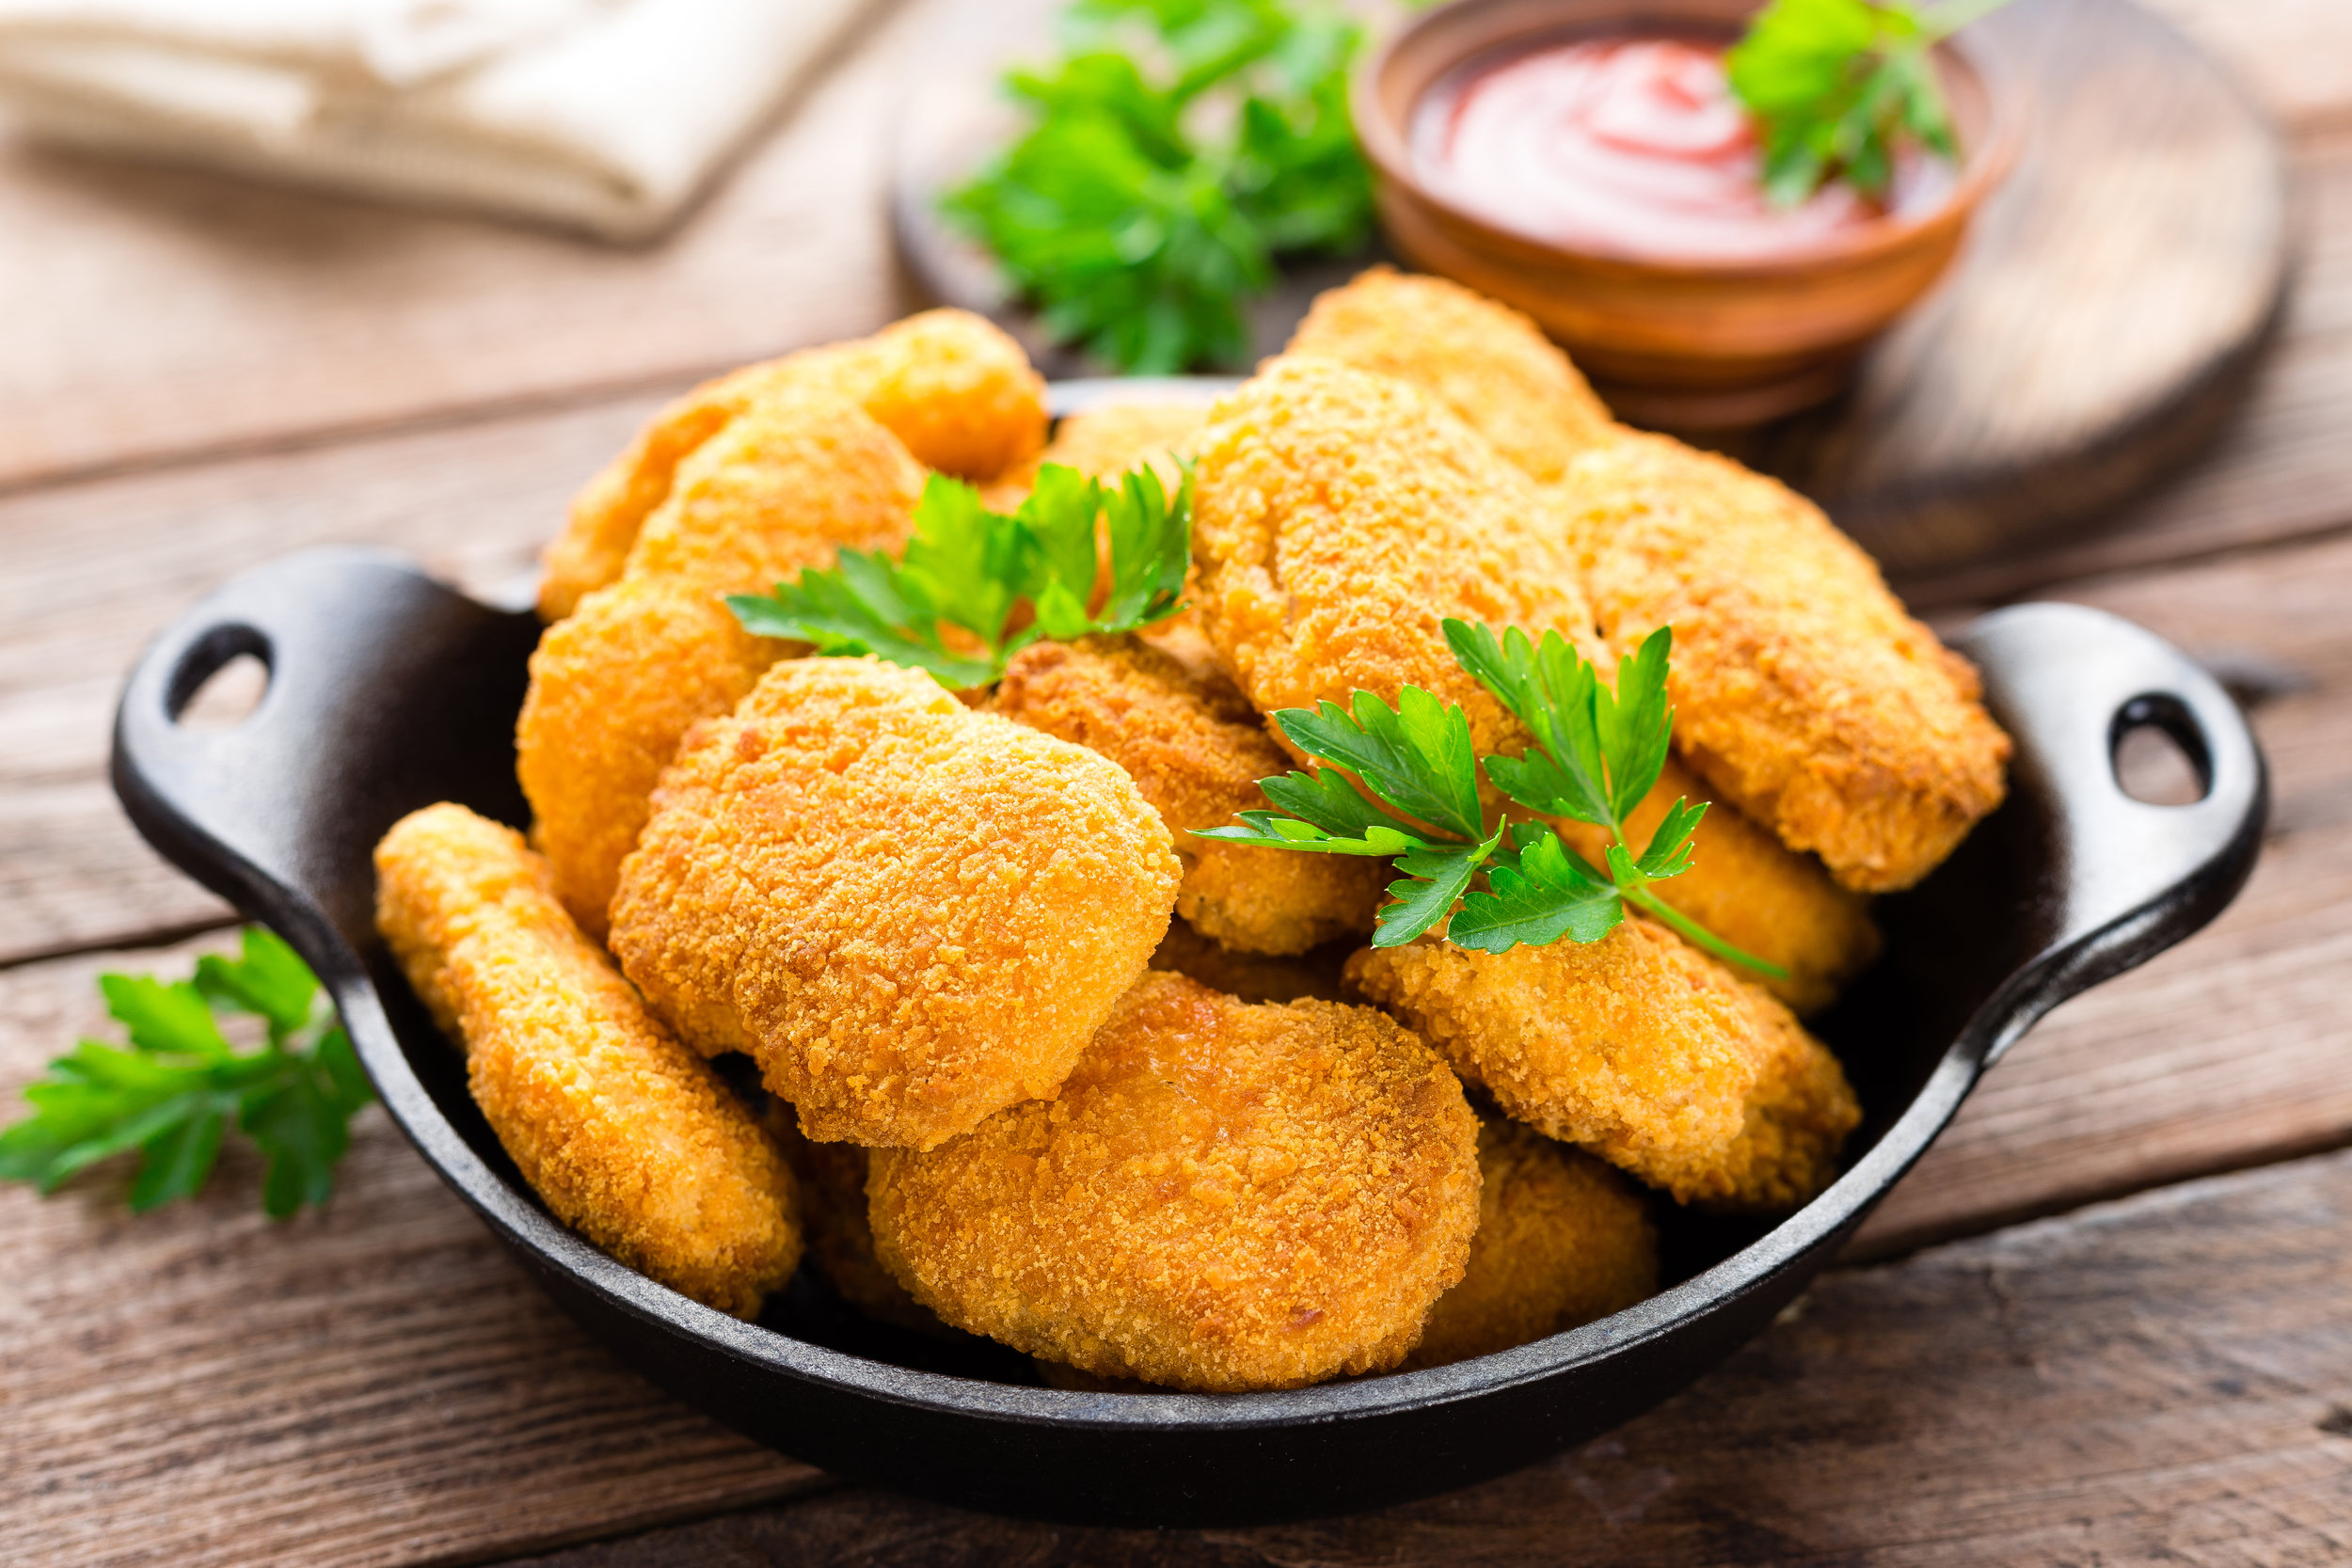 good ranchers chicken nuggets cooking instructions  - 1. Bake: Preheat oven to 375°F. Spread frozen nuggets on a baking sheet and bake for 25-30 minutes. 2. Pan Fry: Heat vegetable oil (1/8″) in skillet until hot. Fry nuggets in the hot oil over medium heat 10-12 minutes, turning over after 5-6 minutes. Nuggets should be golden brown on both sides.